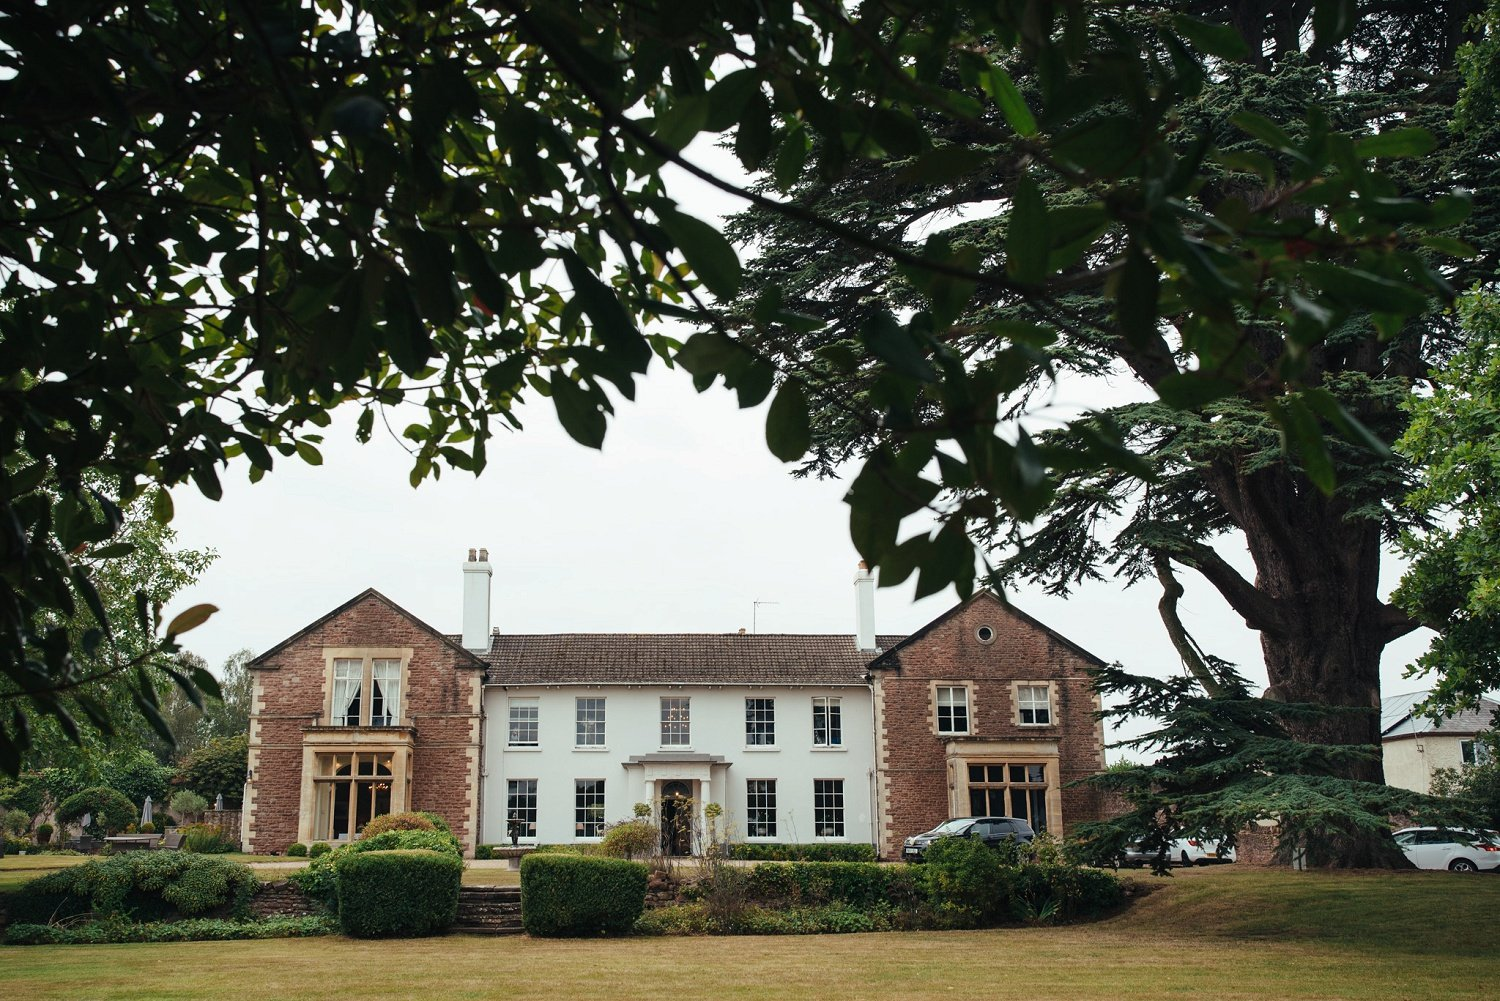 Glewstone Court in Herefordshire ready for an intimate wedding ceremony in August 2020